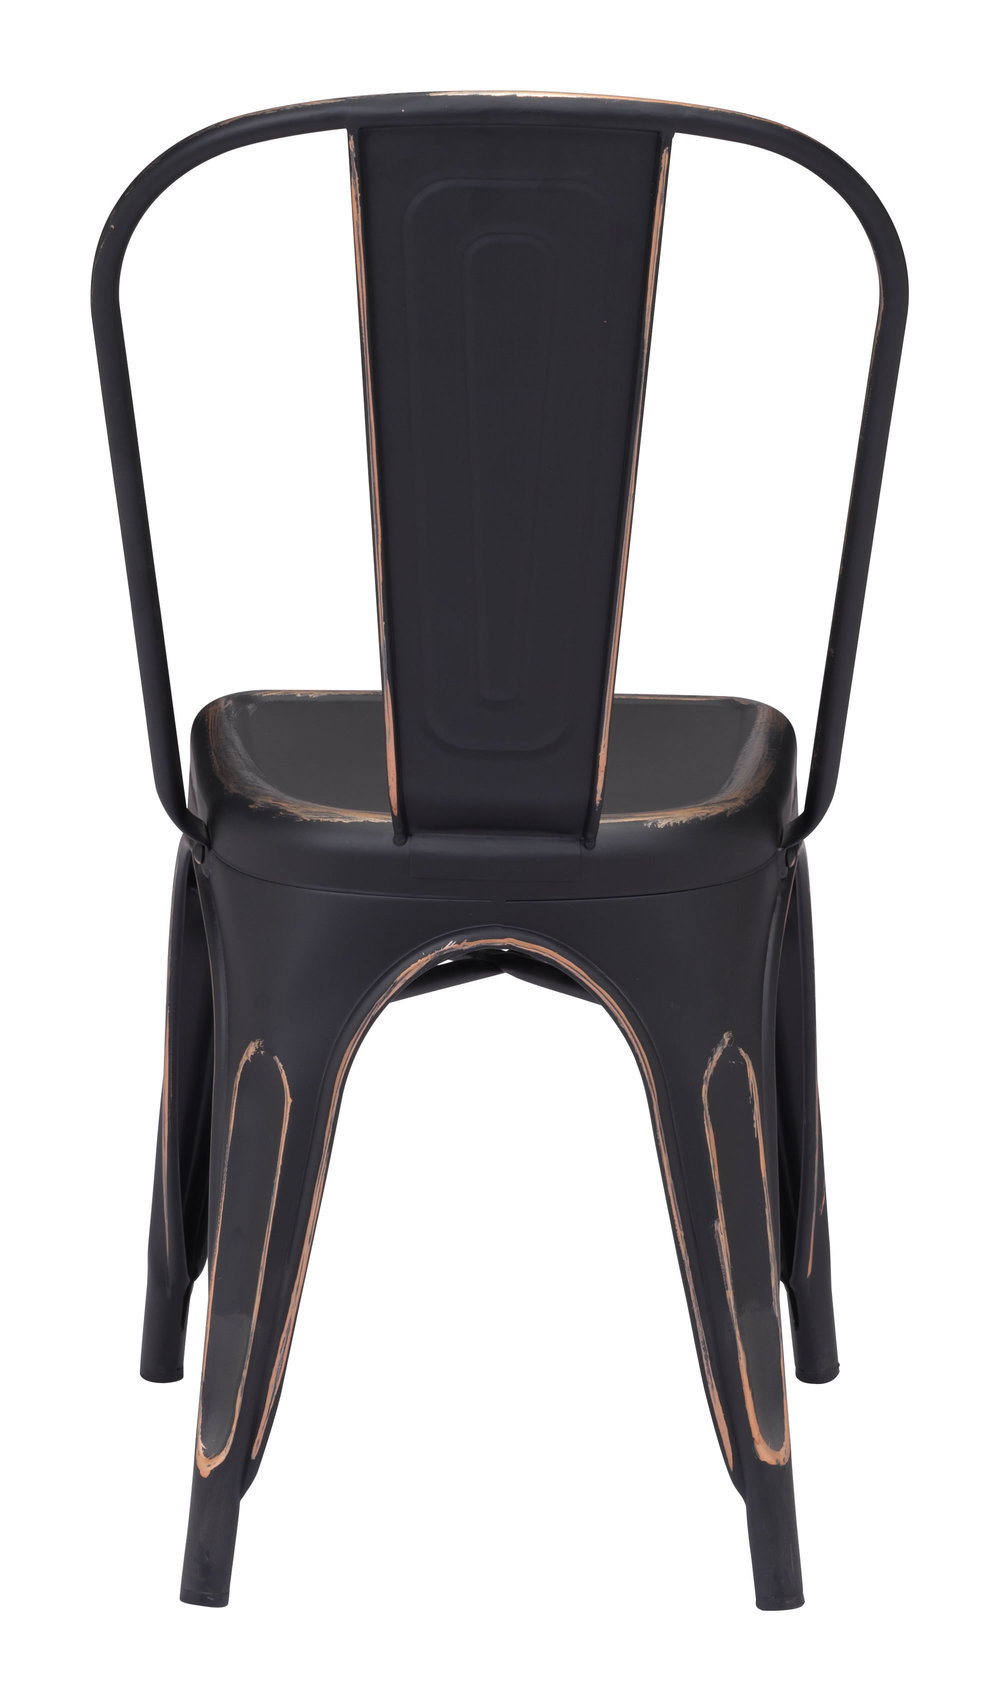 Zuo Modern Contemporary - Elio Dining Chair - Set of 2 - Antique Black Gold